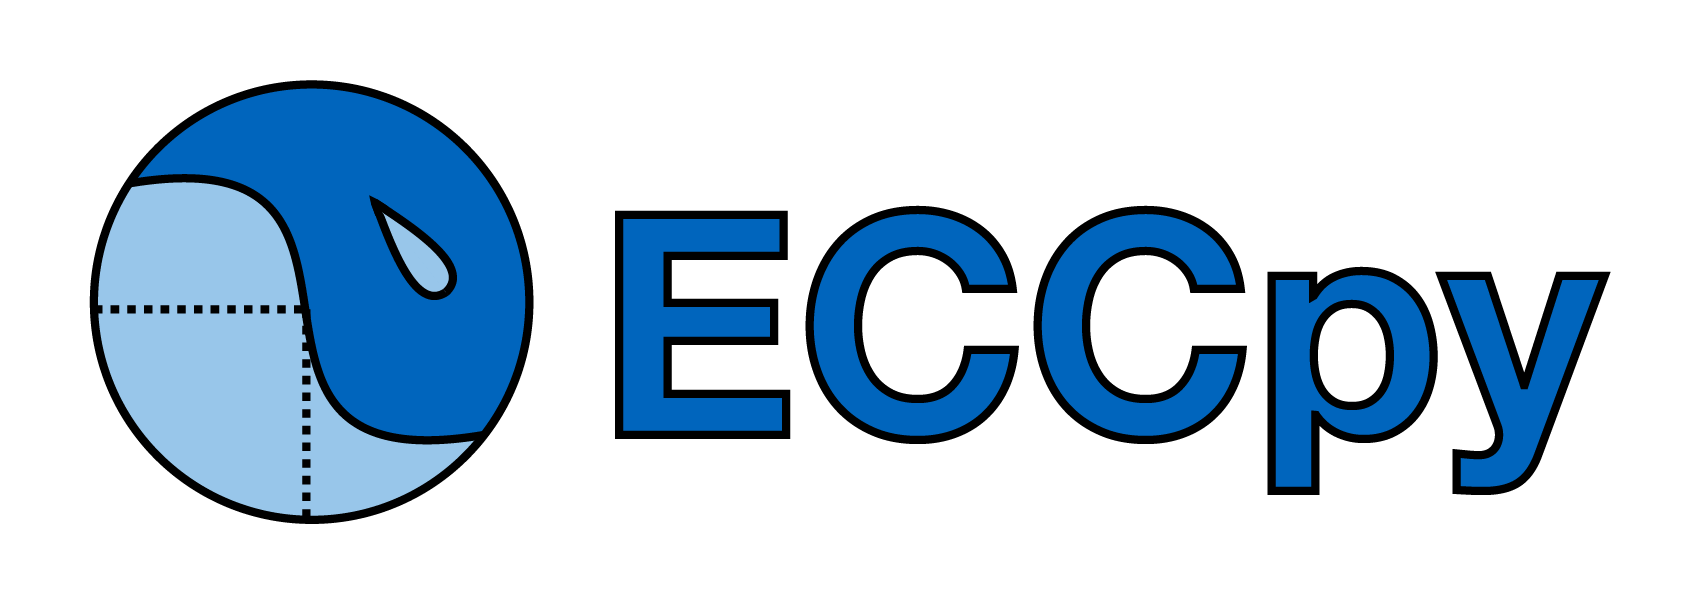 GitHub - teese/eccpy: ECCpy is a program for EC50 calculation in python